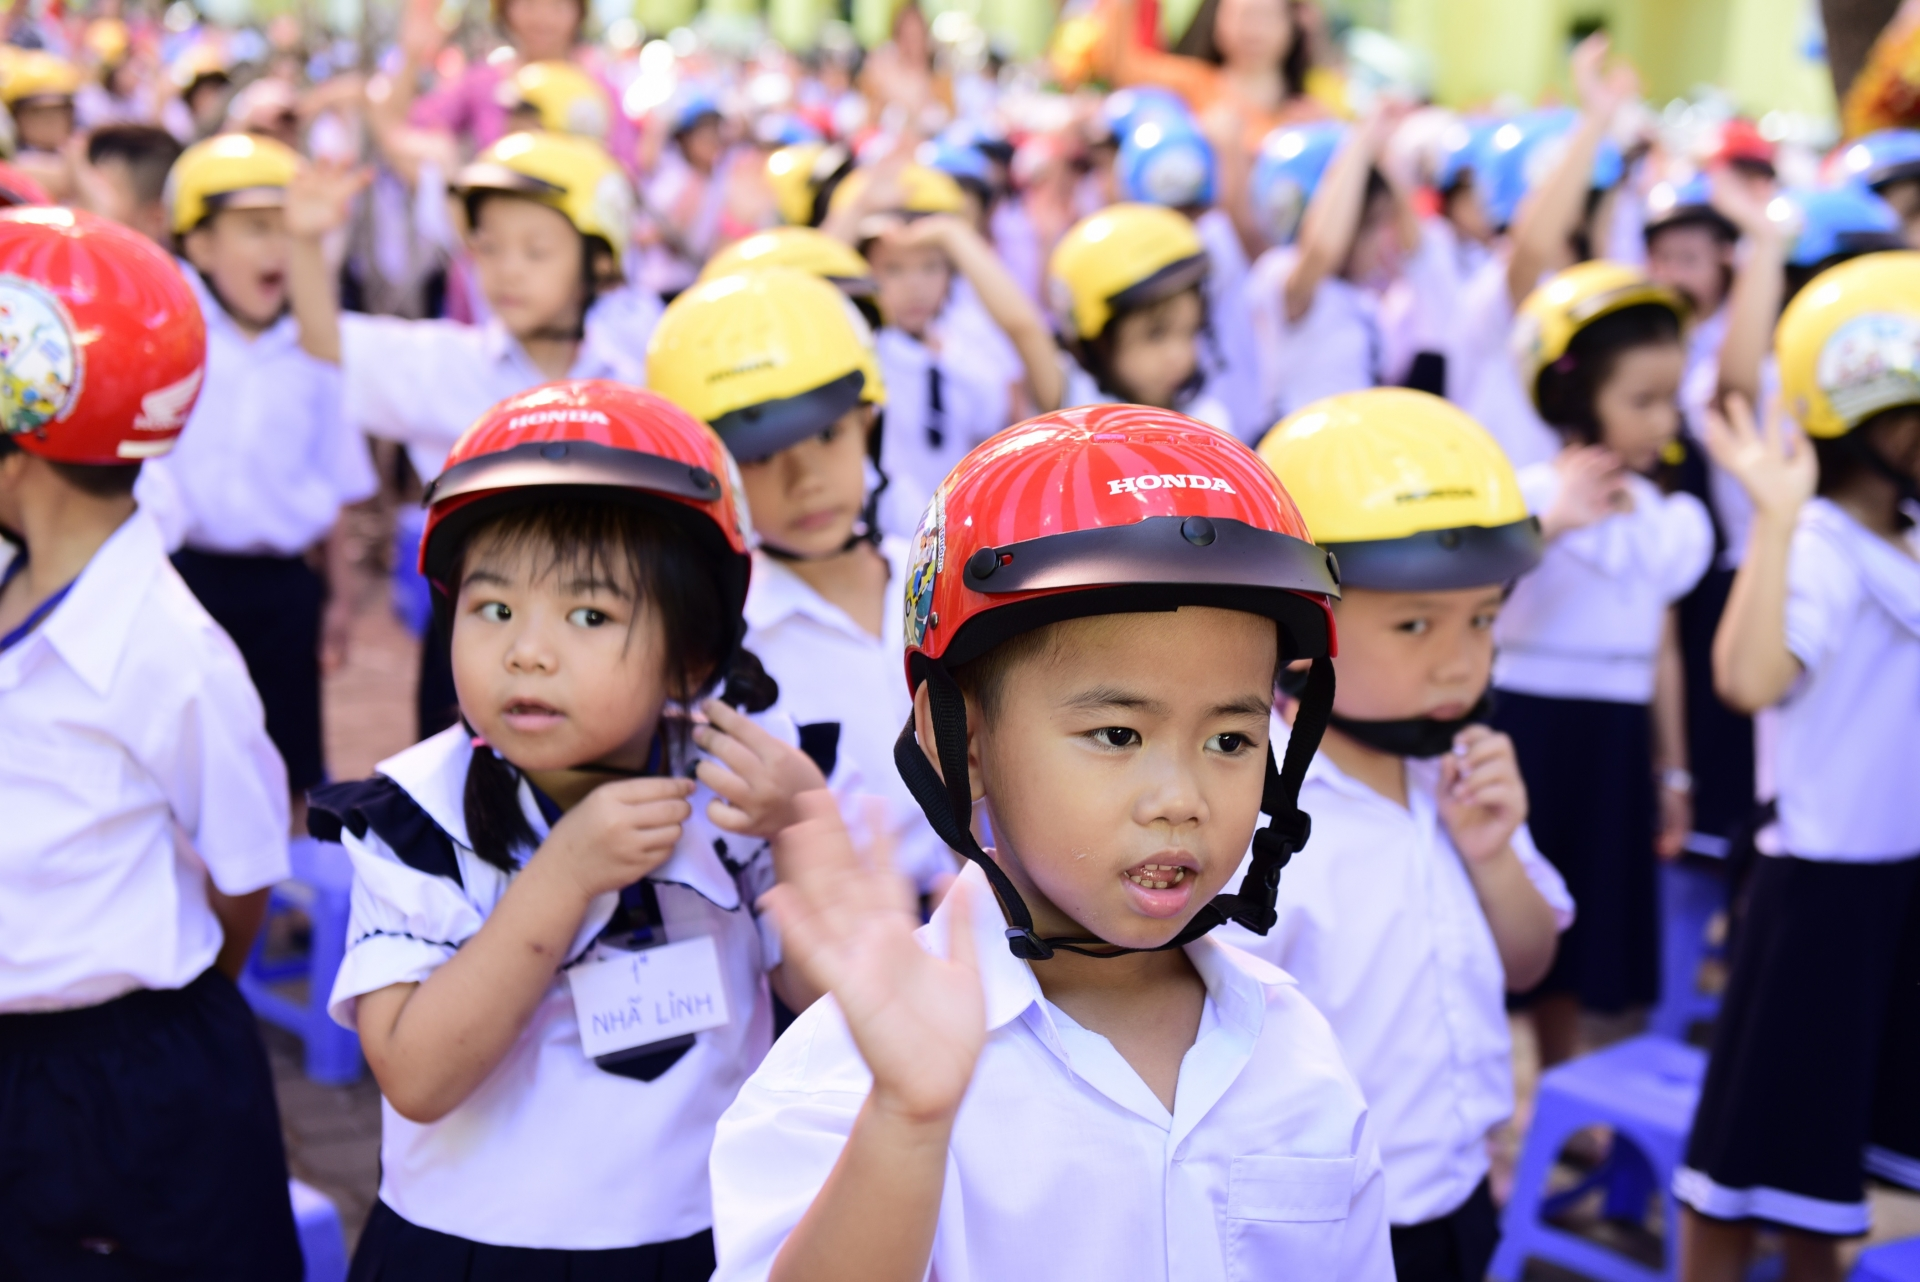 Nearly 2,000 first graders receive quality helmets for new school year